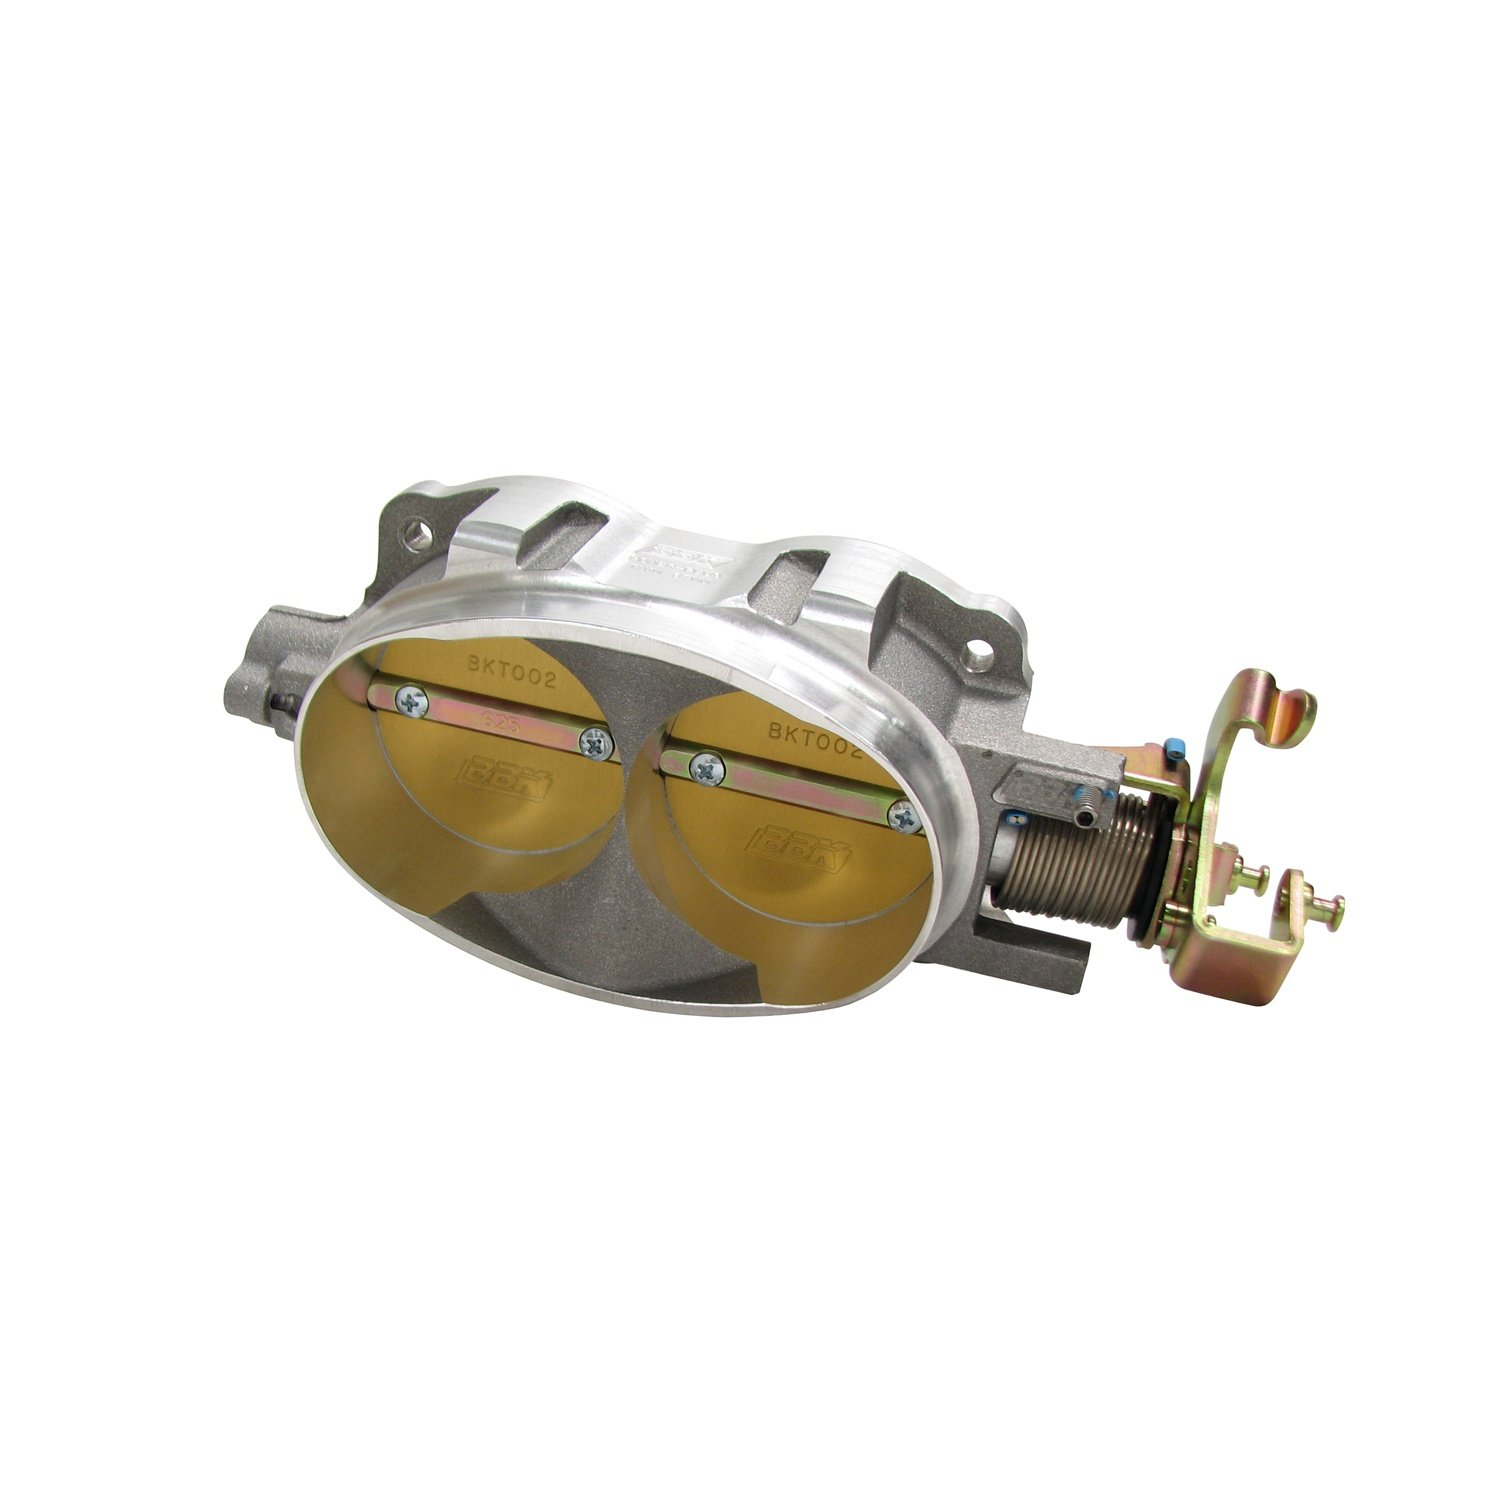 BBK 1767 67mm Throttle Body for Dodge Viper 1 pcs 25ml best b 7000 multi purpose glue adhesive epoxy resin diy crafts glass touch screen cell phone super glue b7000